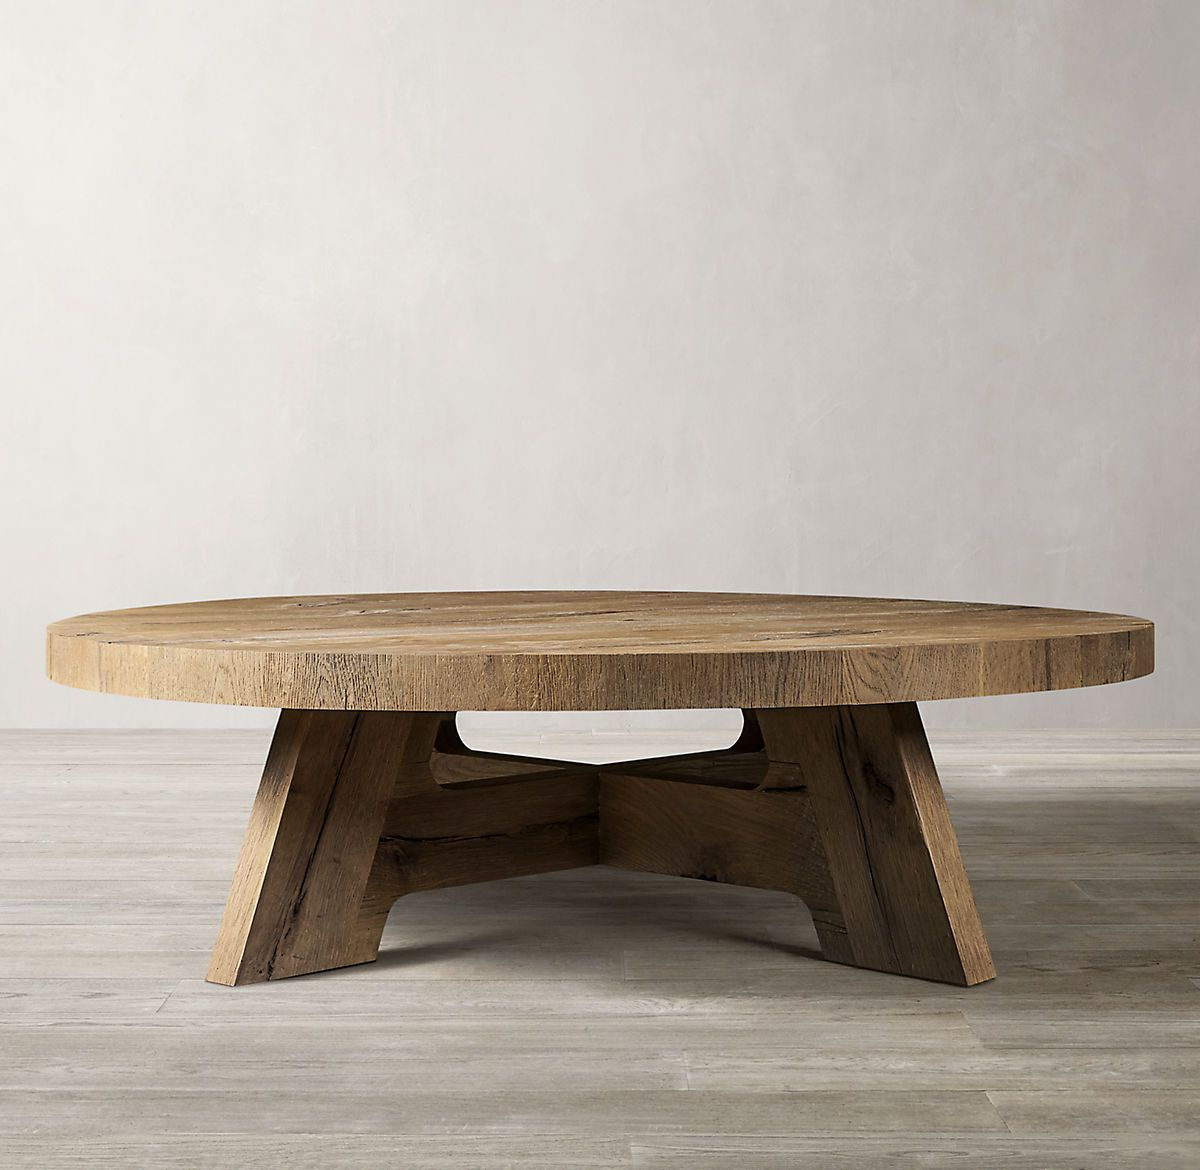 Https Media Restorationhardware Com Is Image Rhis Prod19220137 E13790172 Tq Rs Np Fullwi In 2021 Round Coffee Table Round Coffee Table Diy Round Wooden Coffee Table [ 1170 x 1200 Pixel ]